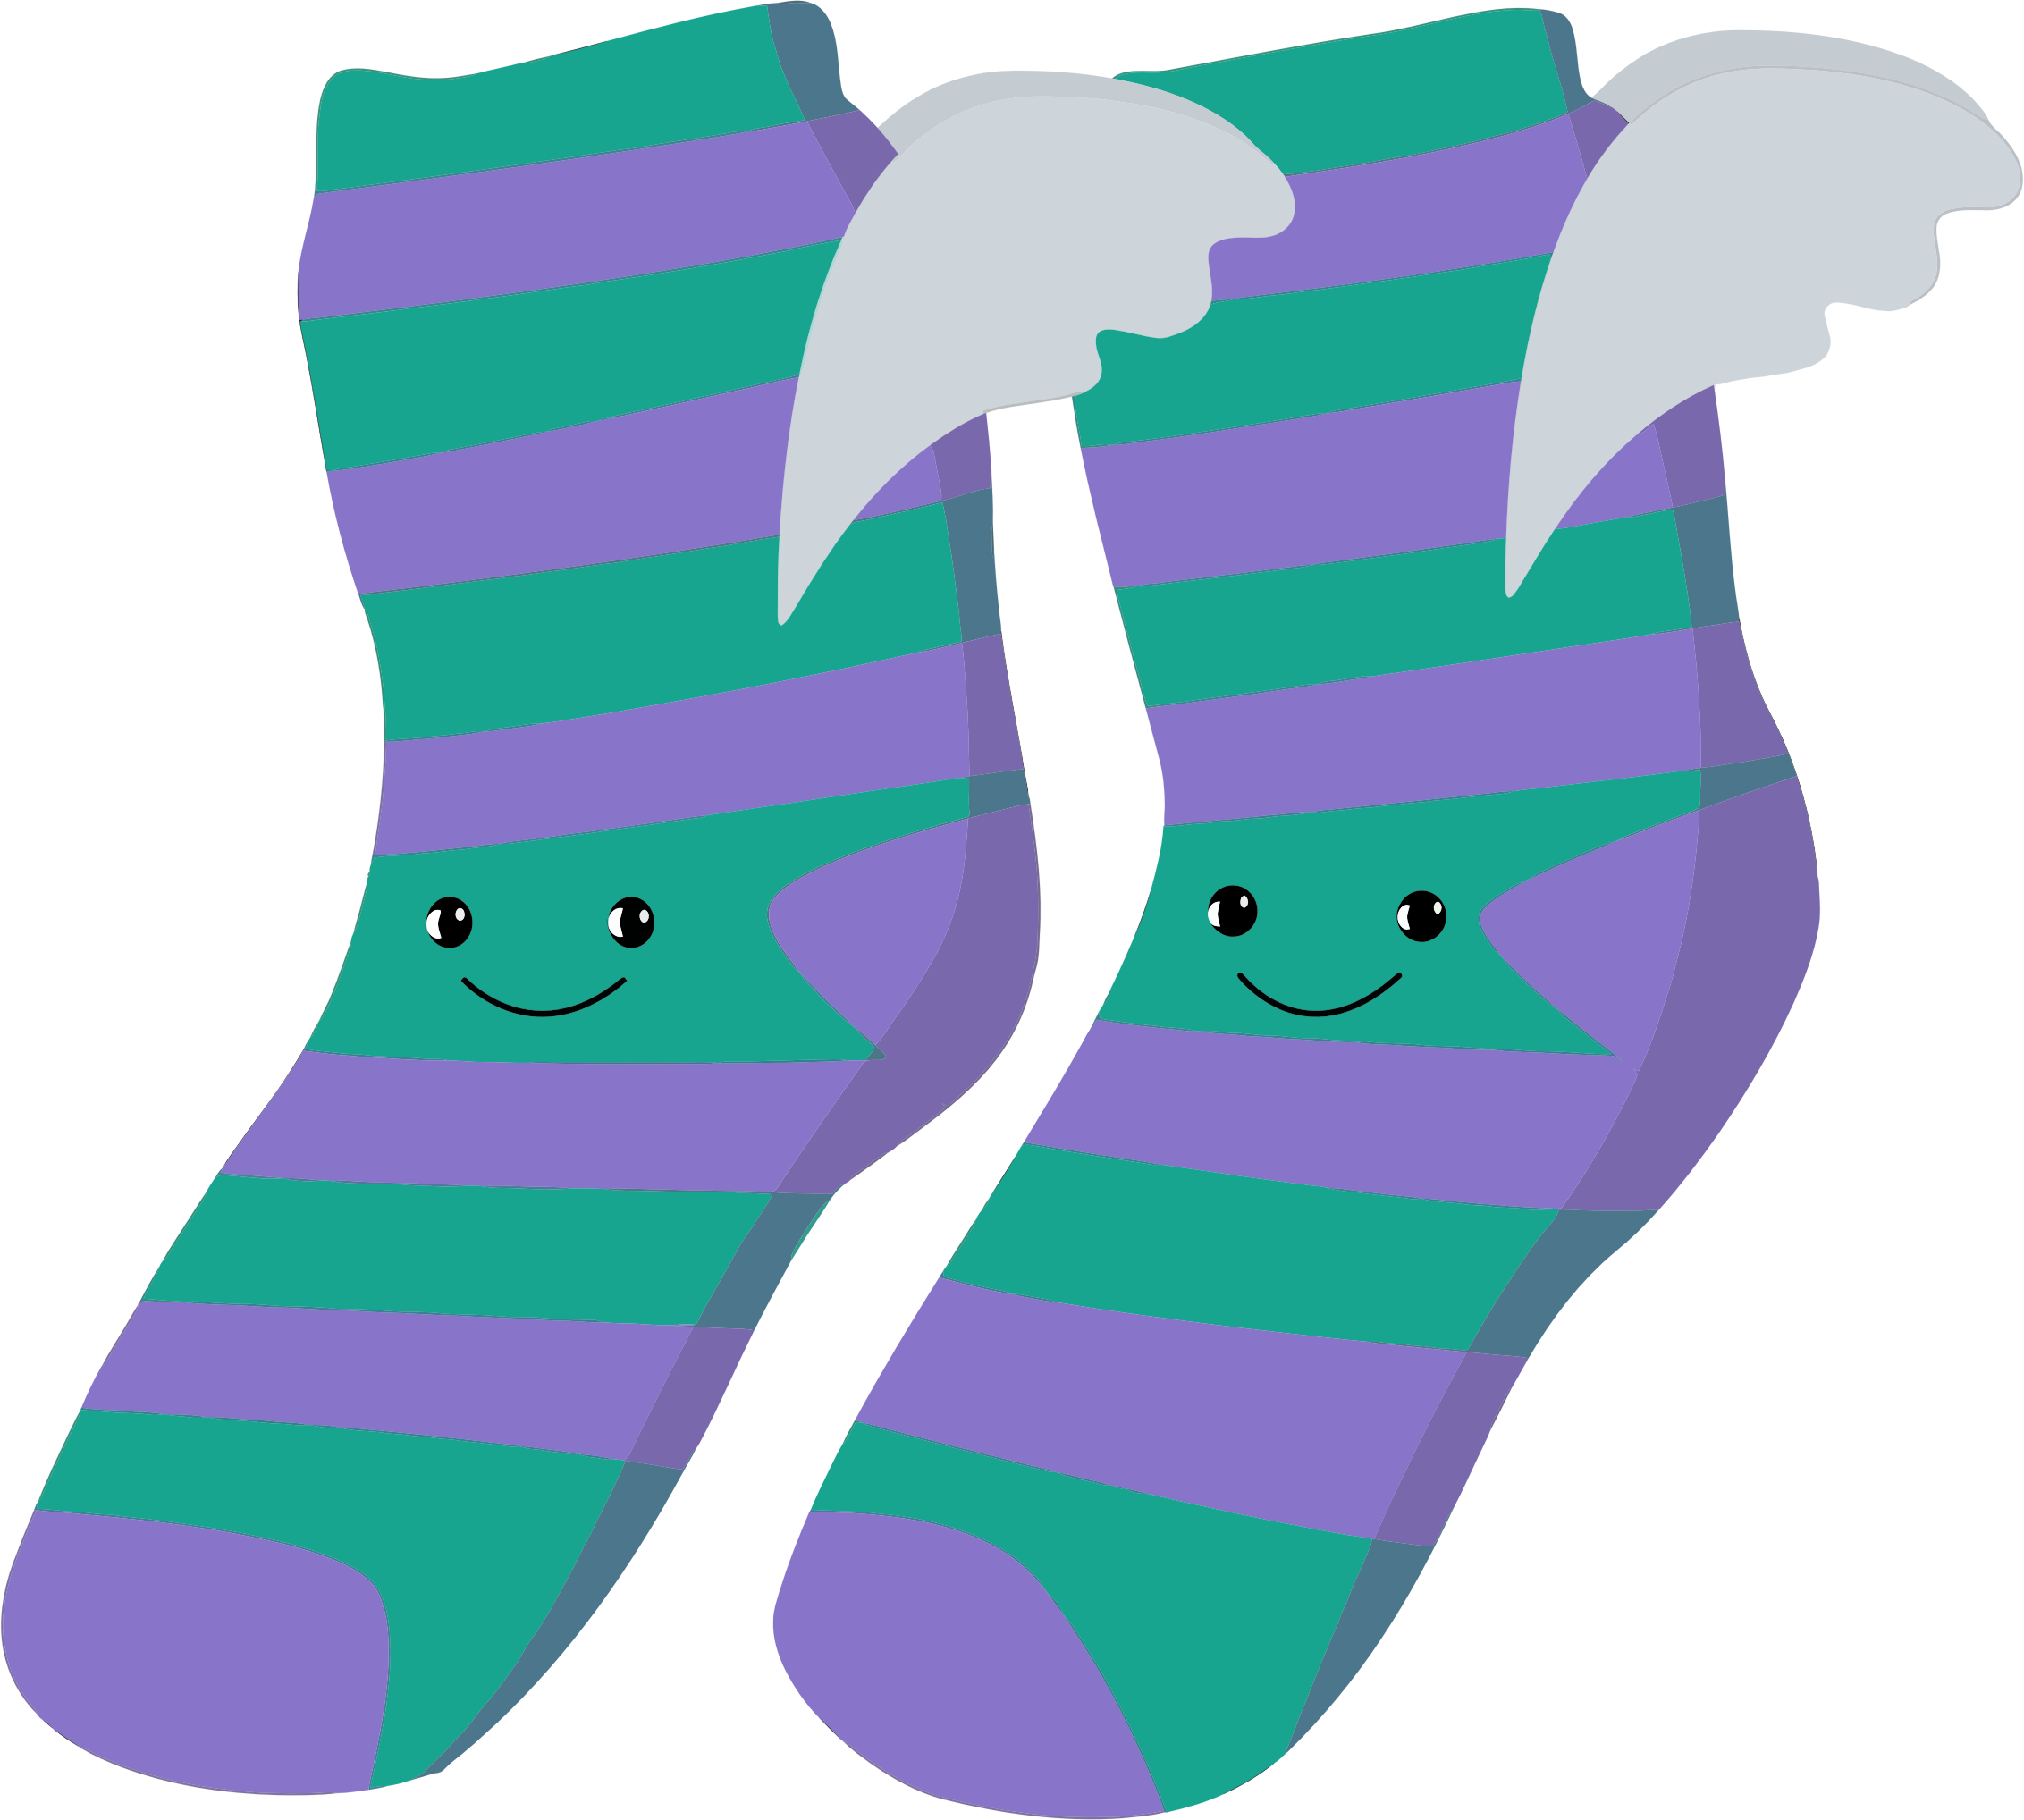 Anthropomorphic Winged Socks by GDJ